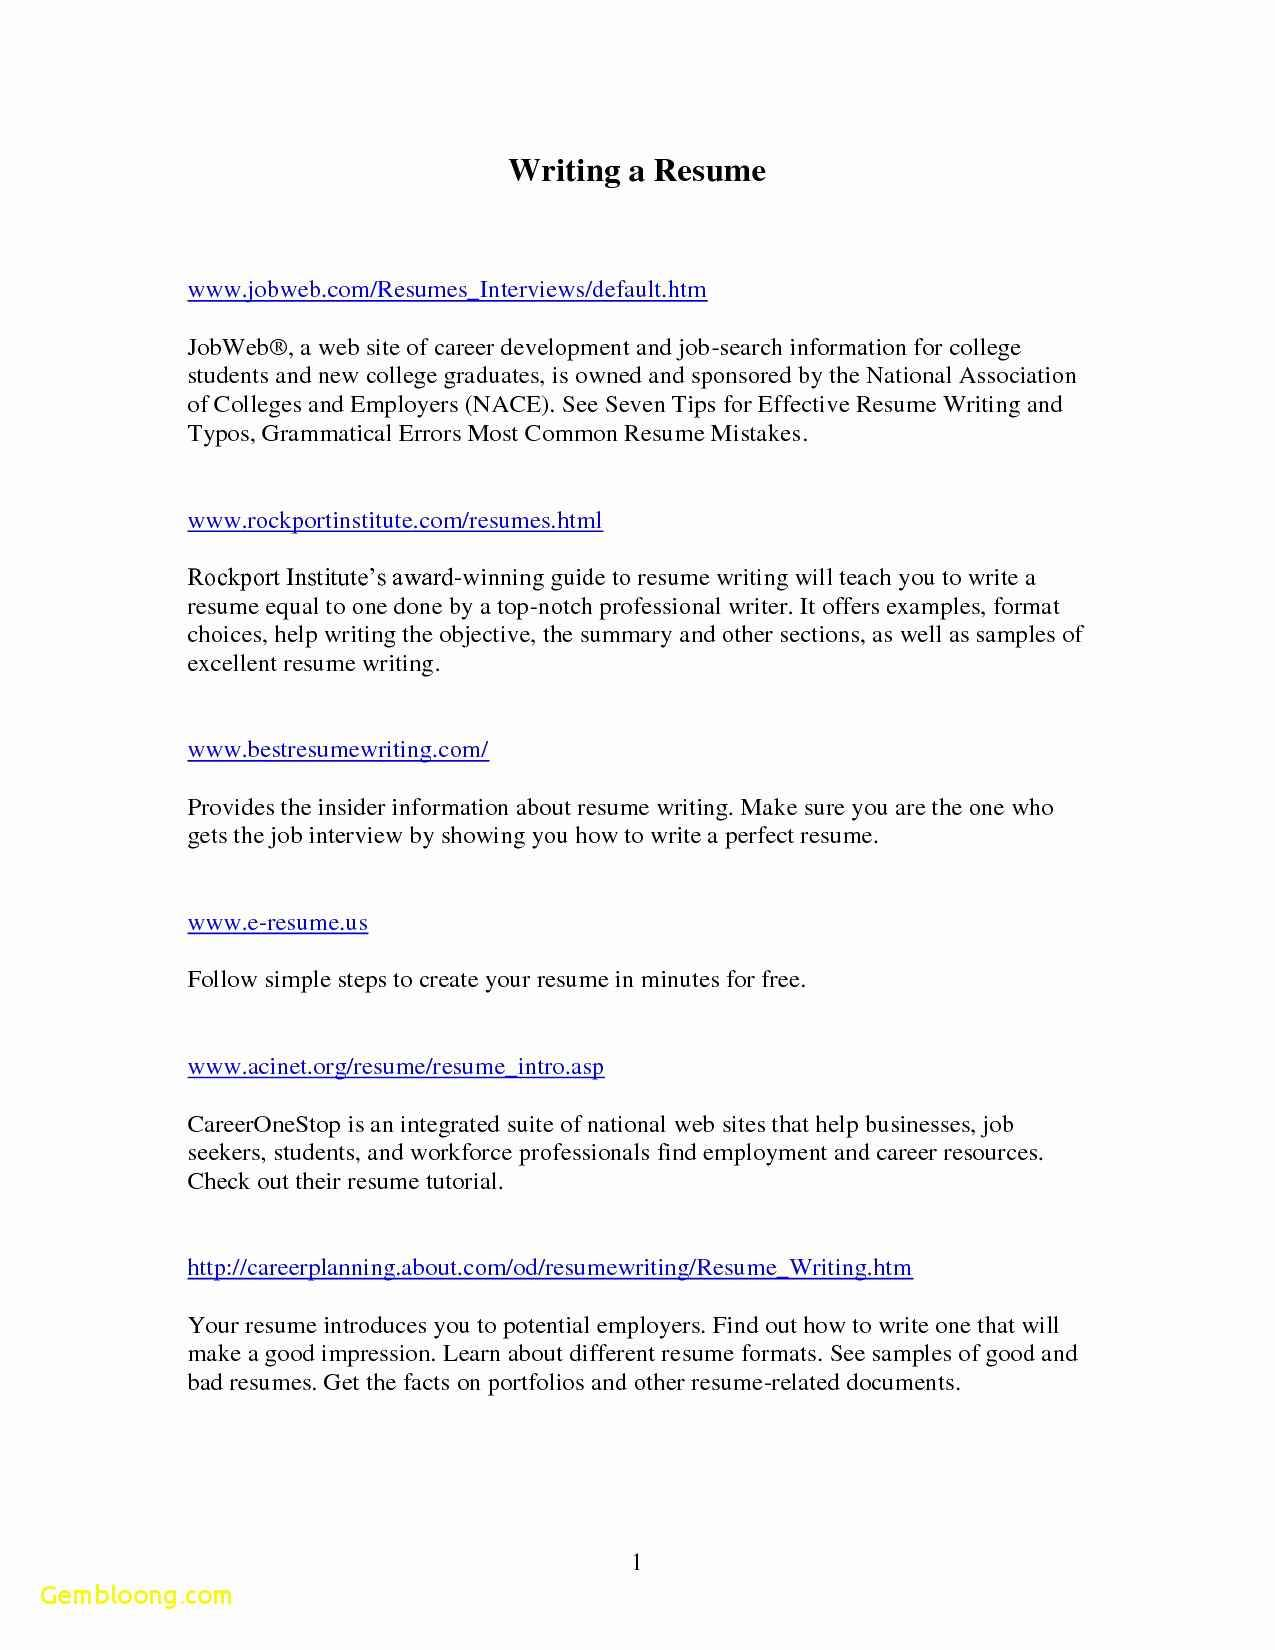 Gwu Resume Template - New Resume Templates 2017 Inspirational A Simple Resume format